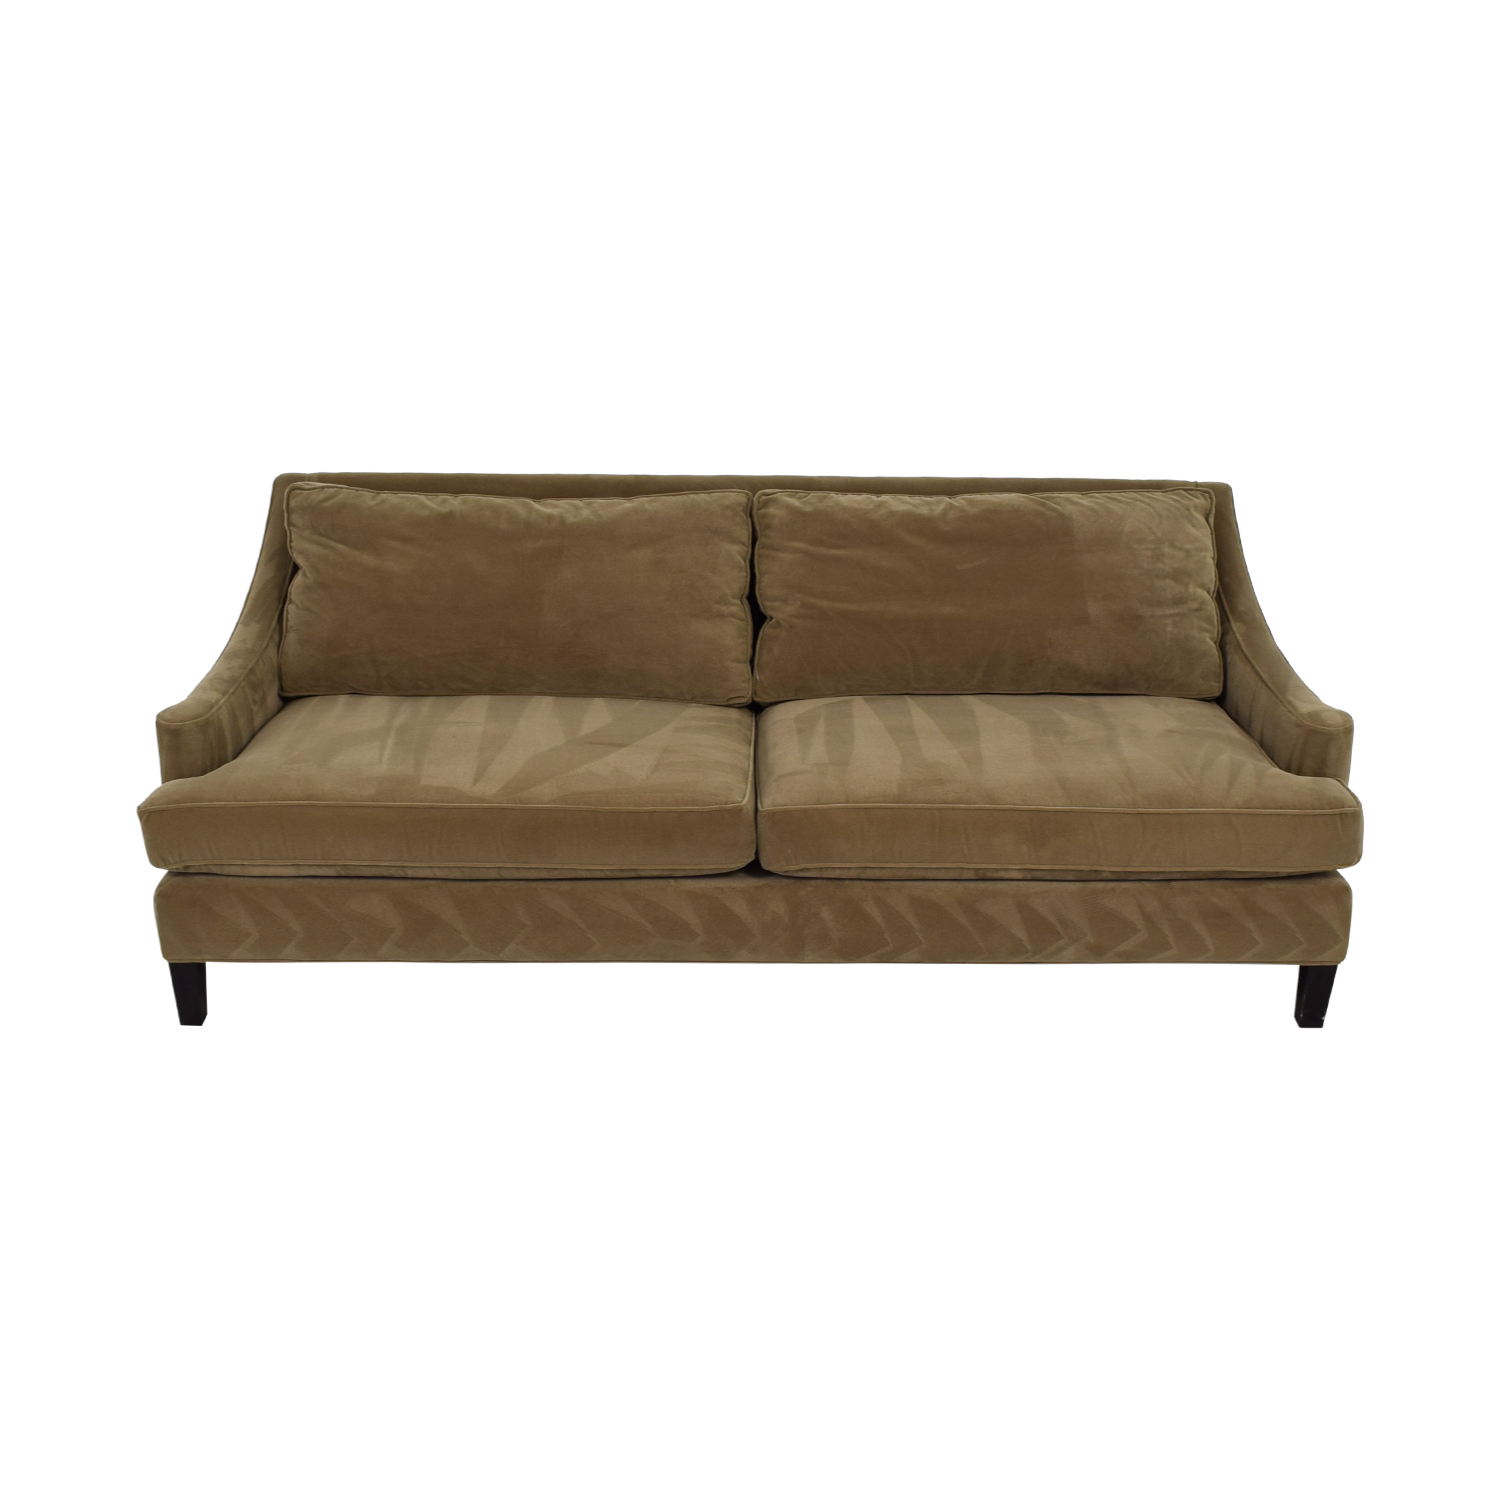 Lillian August Nicole Olive Green Two-Cushion Sofa / Sofas